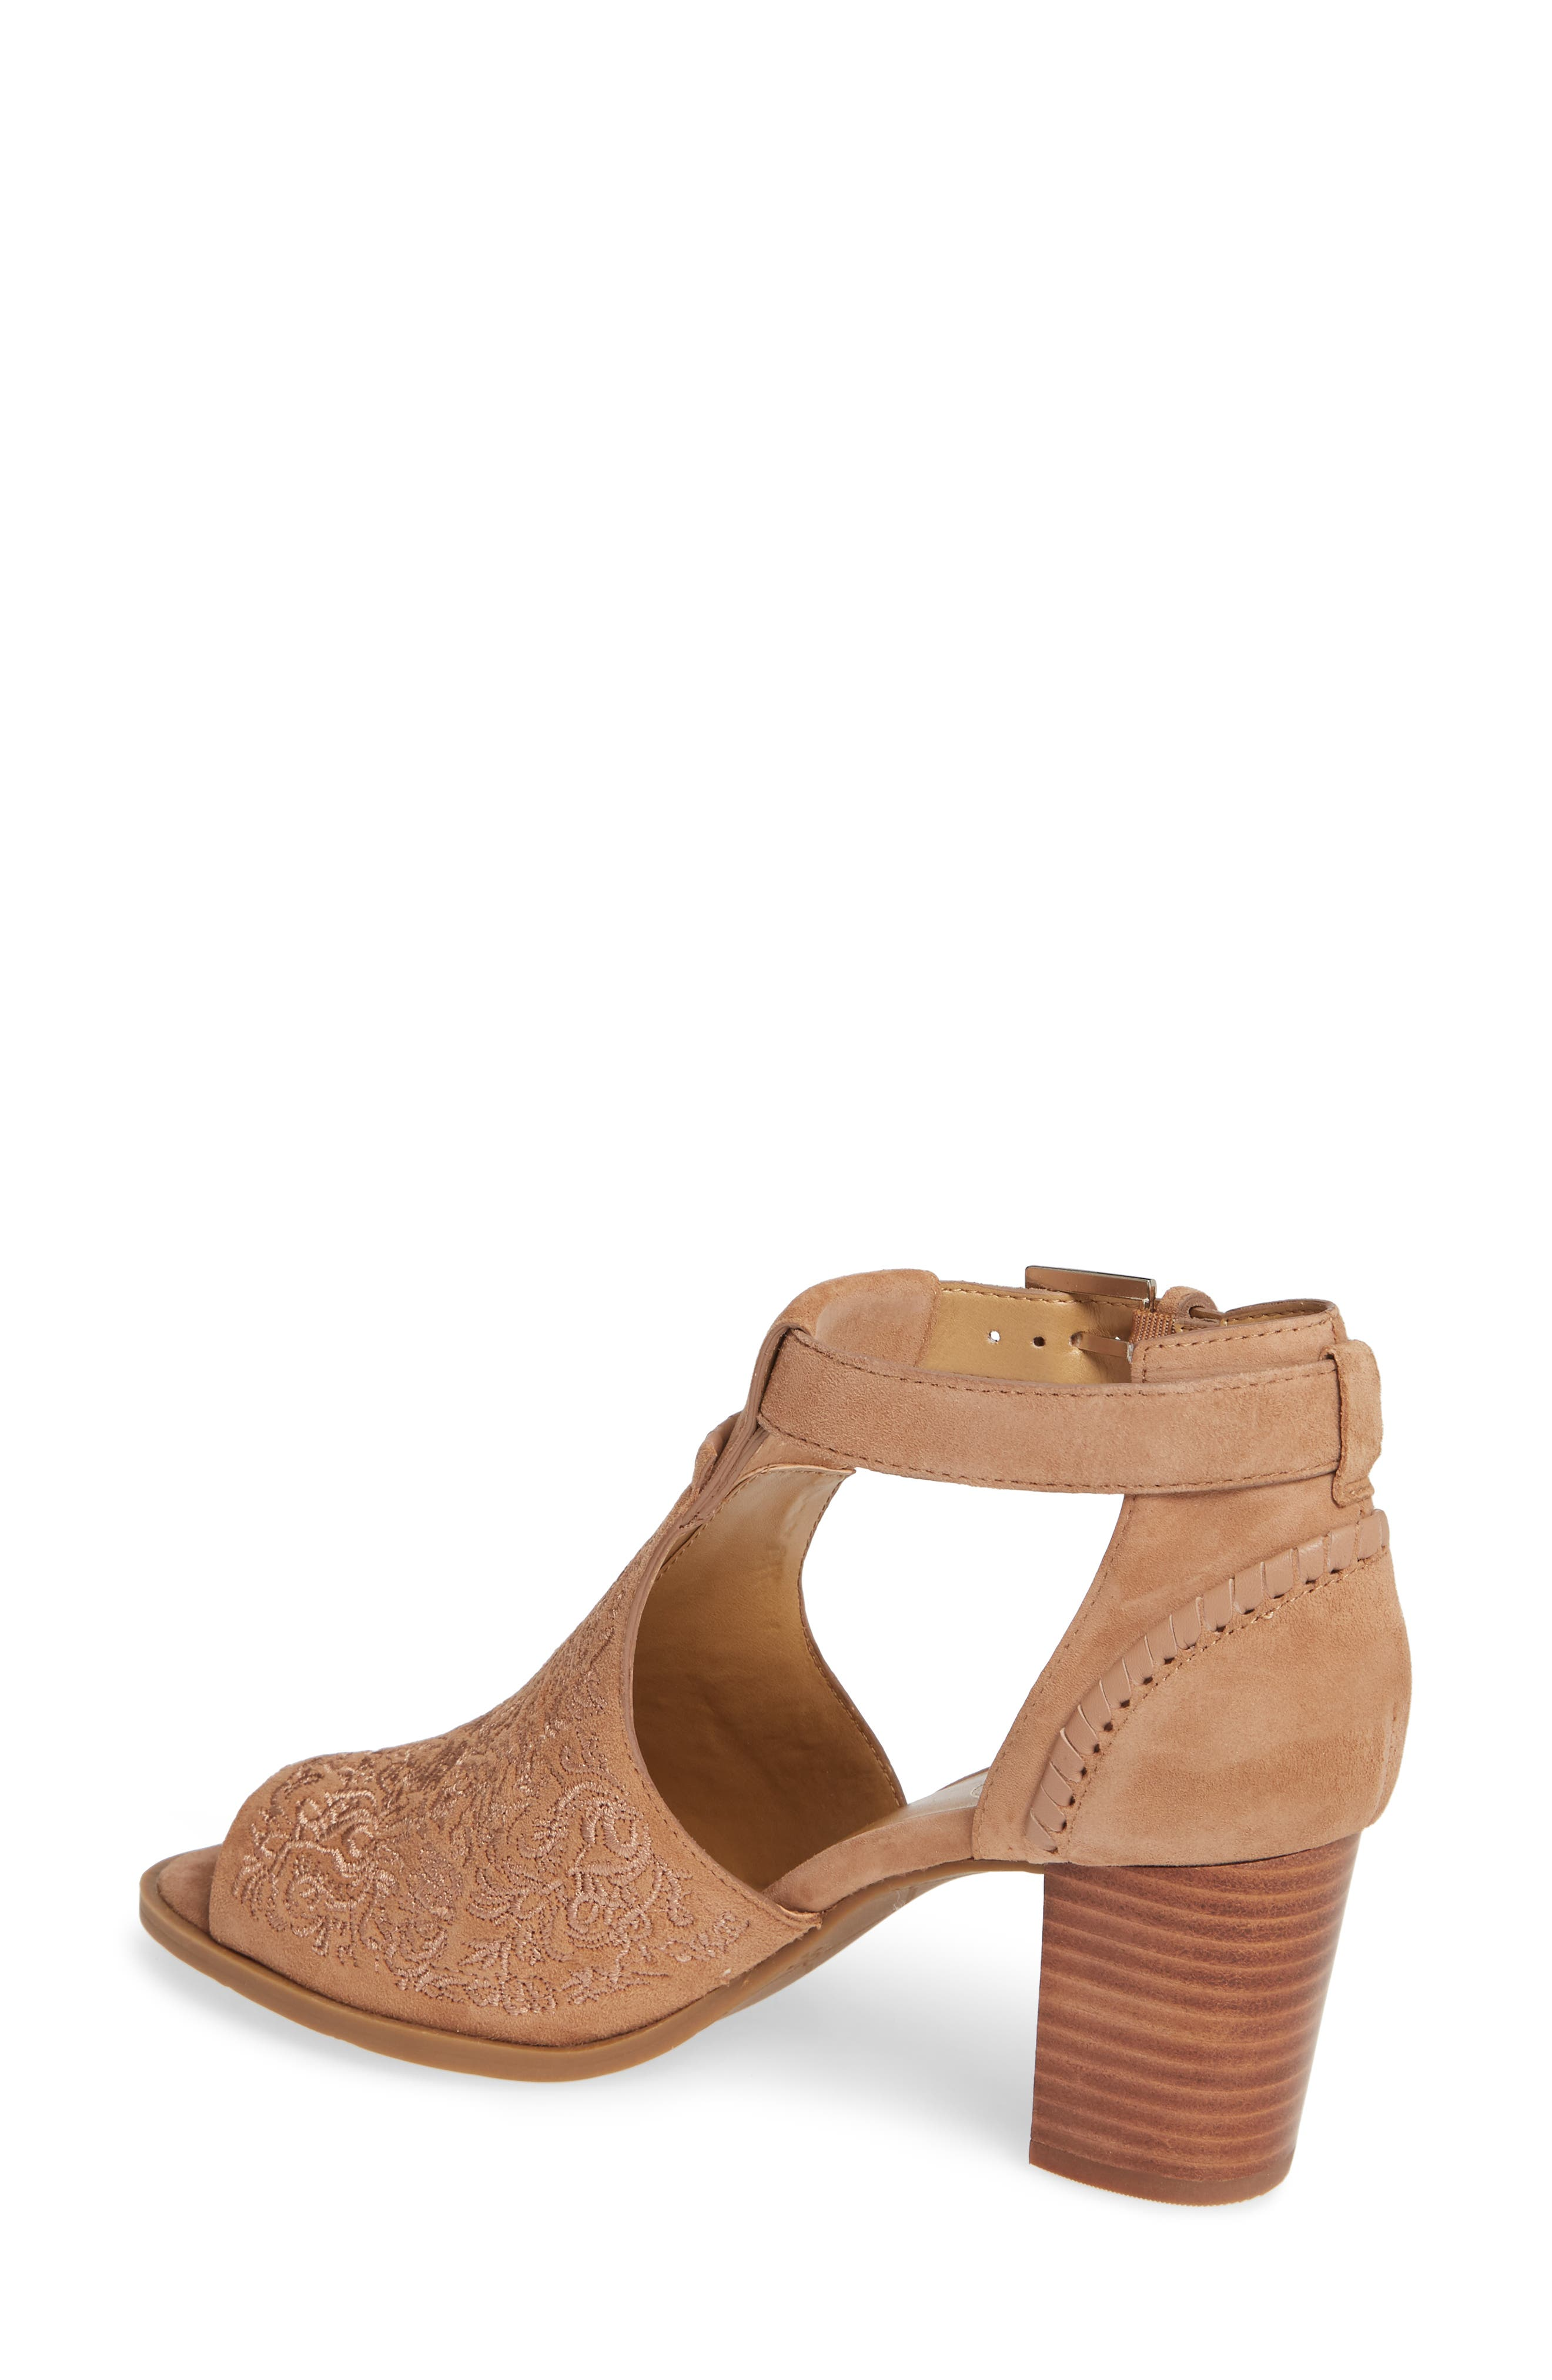 Cameron Block Heel Sandal,                             Alternate thumbnail 2, color,                             BROWN SUEDE